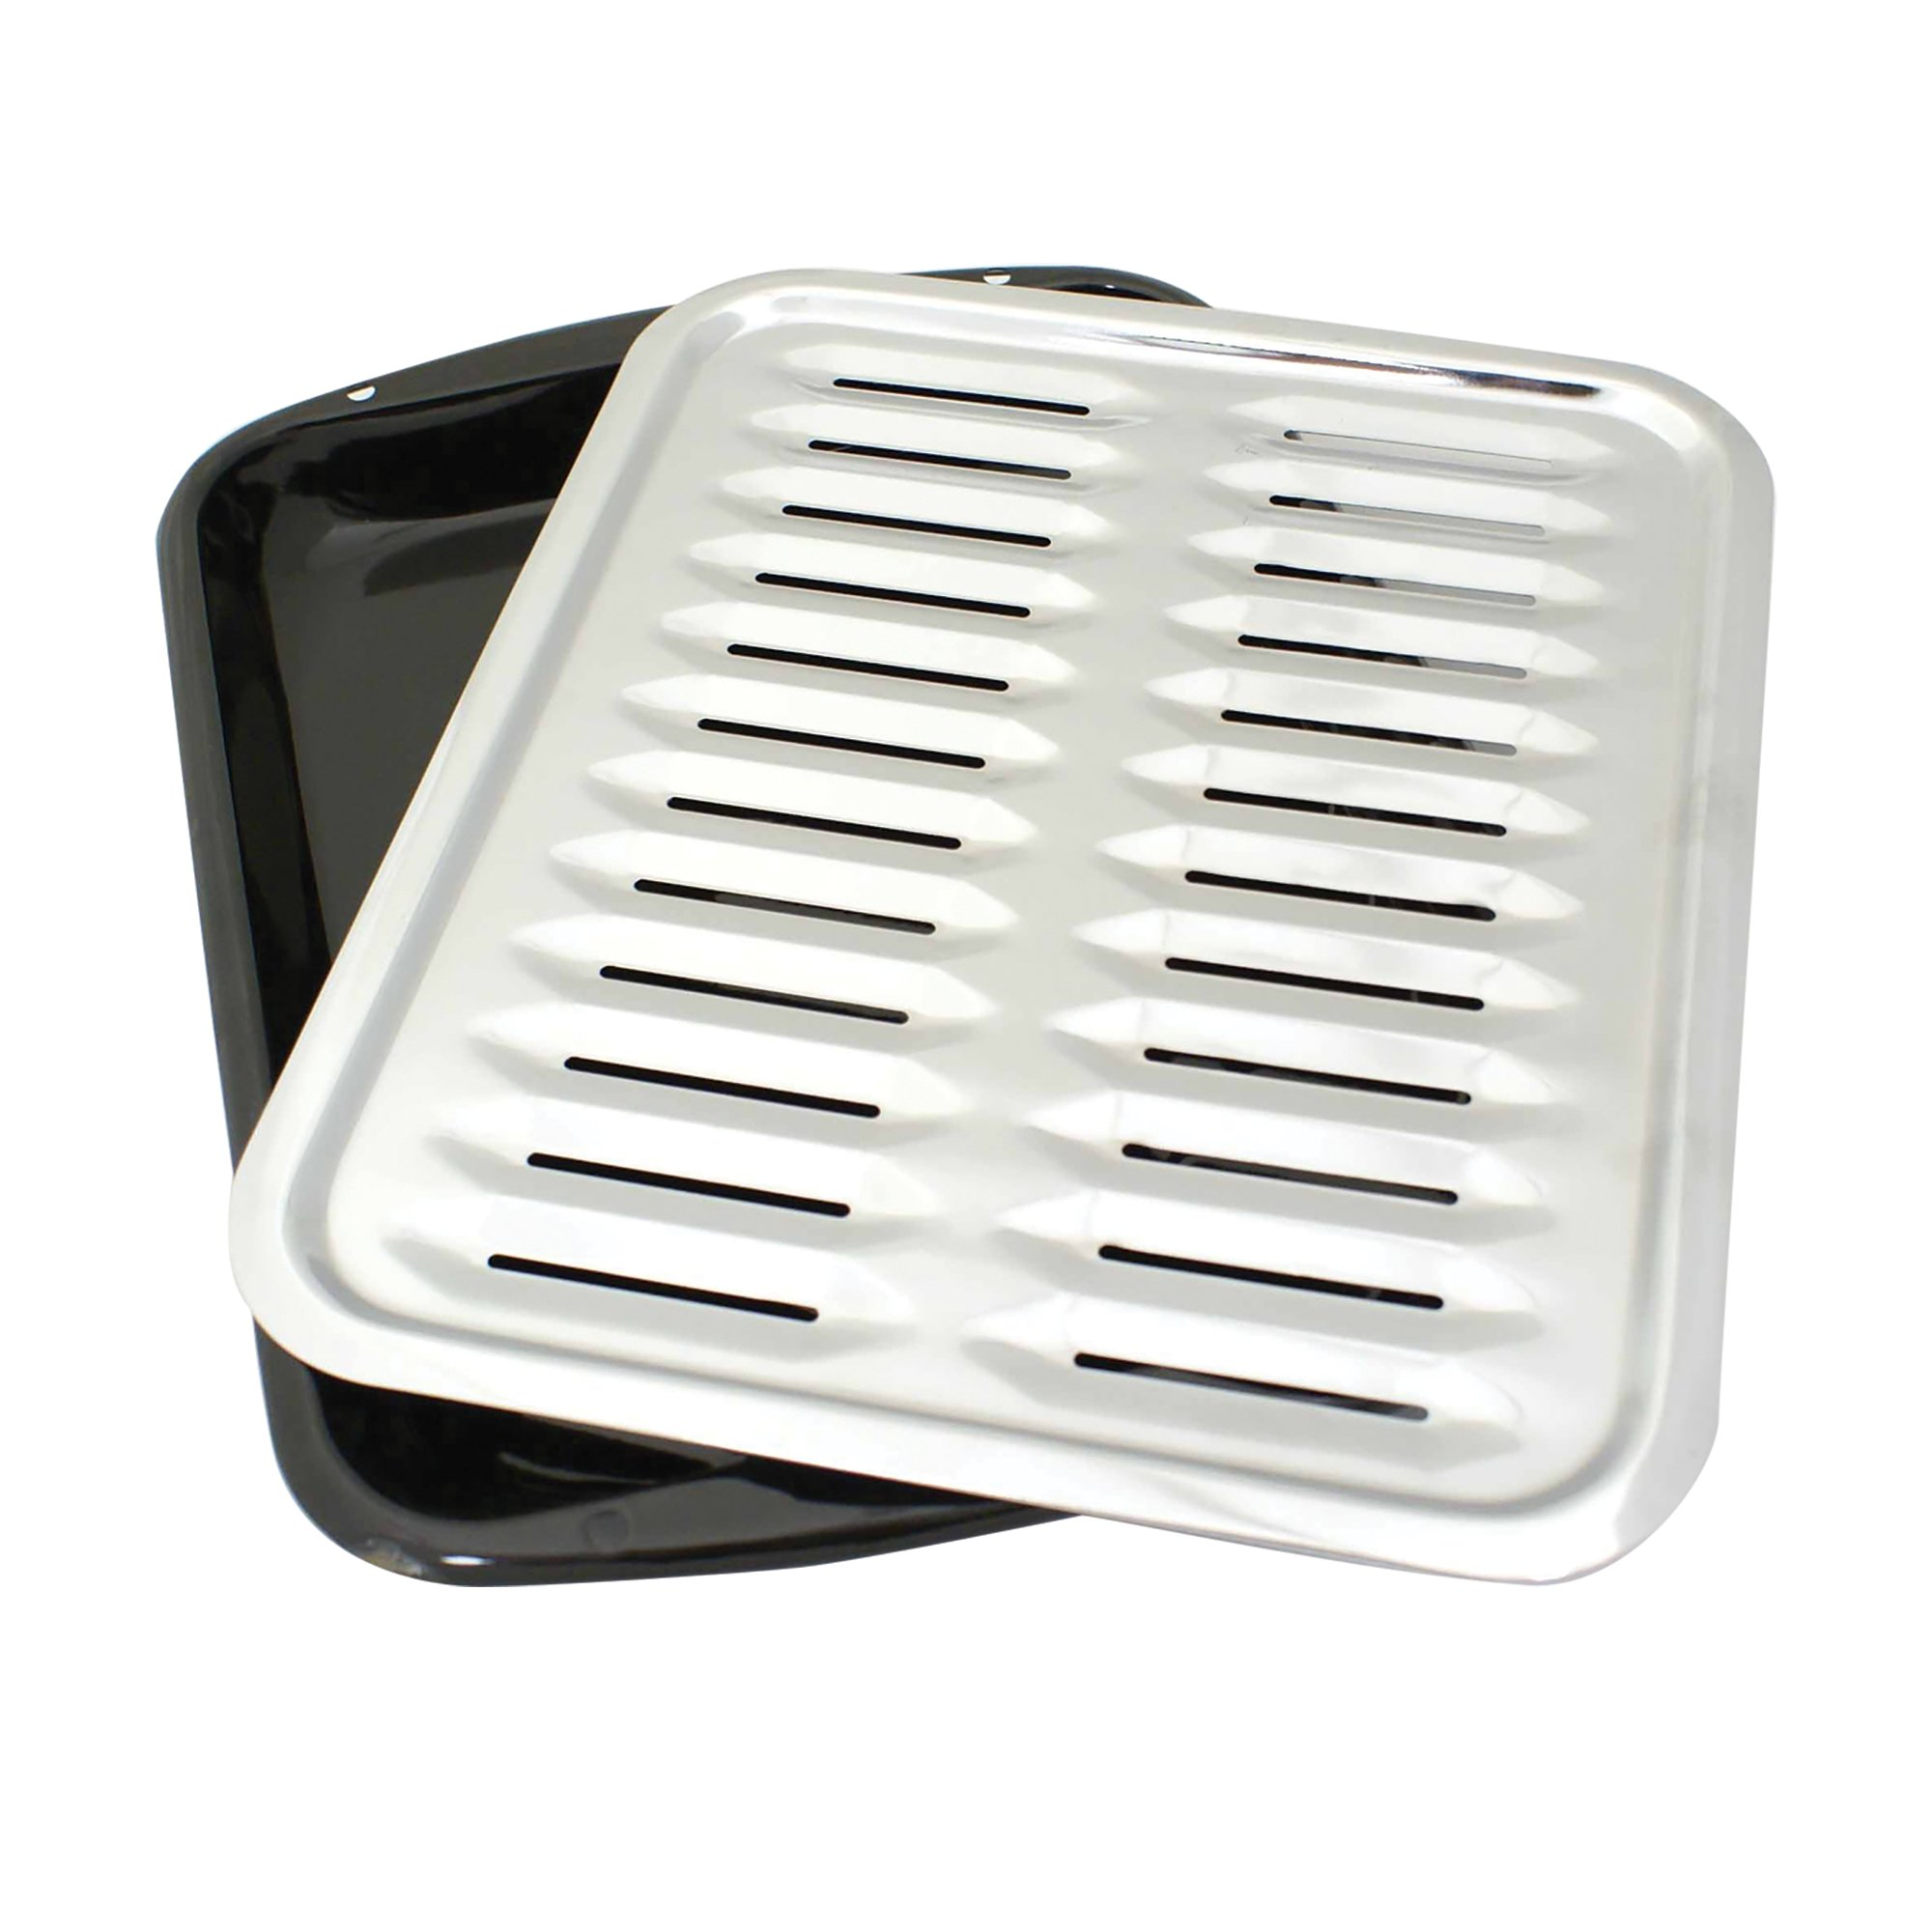 Range Kleen BP100 Porcelain Broiler Pan with Chrome Grill, 2-piece by Range Kleen